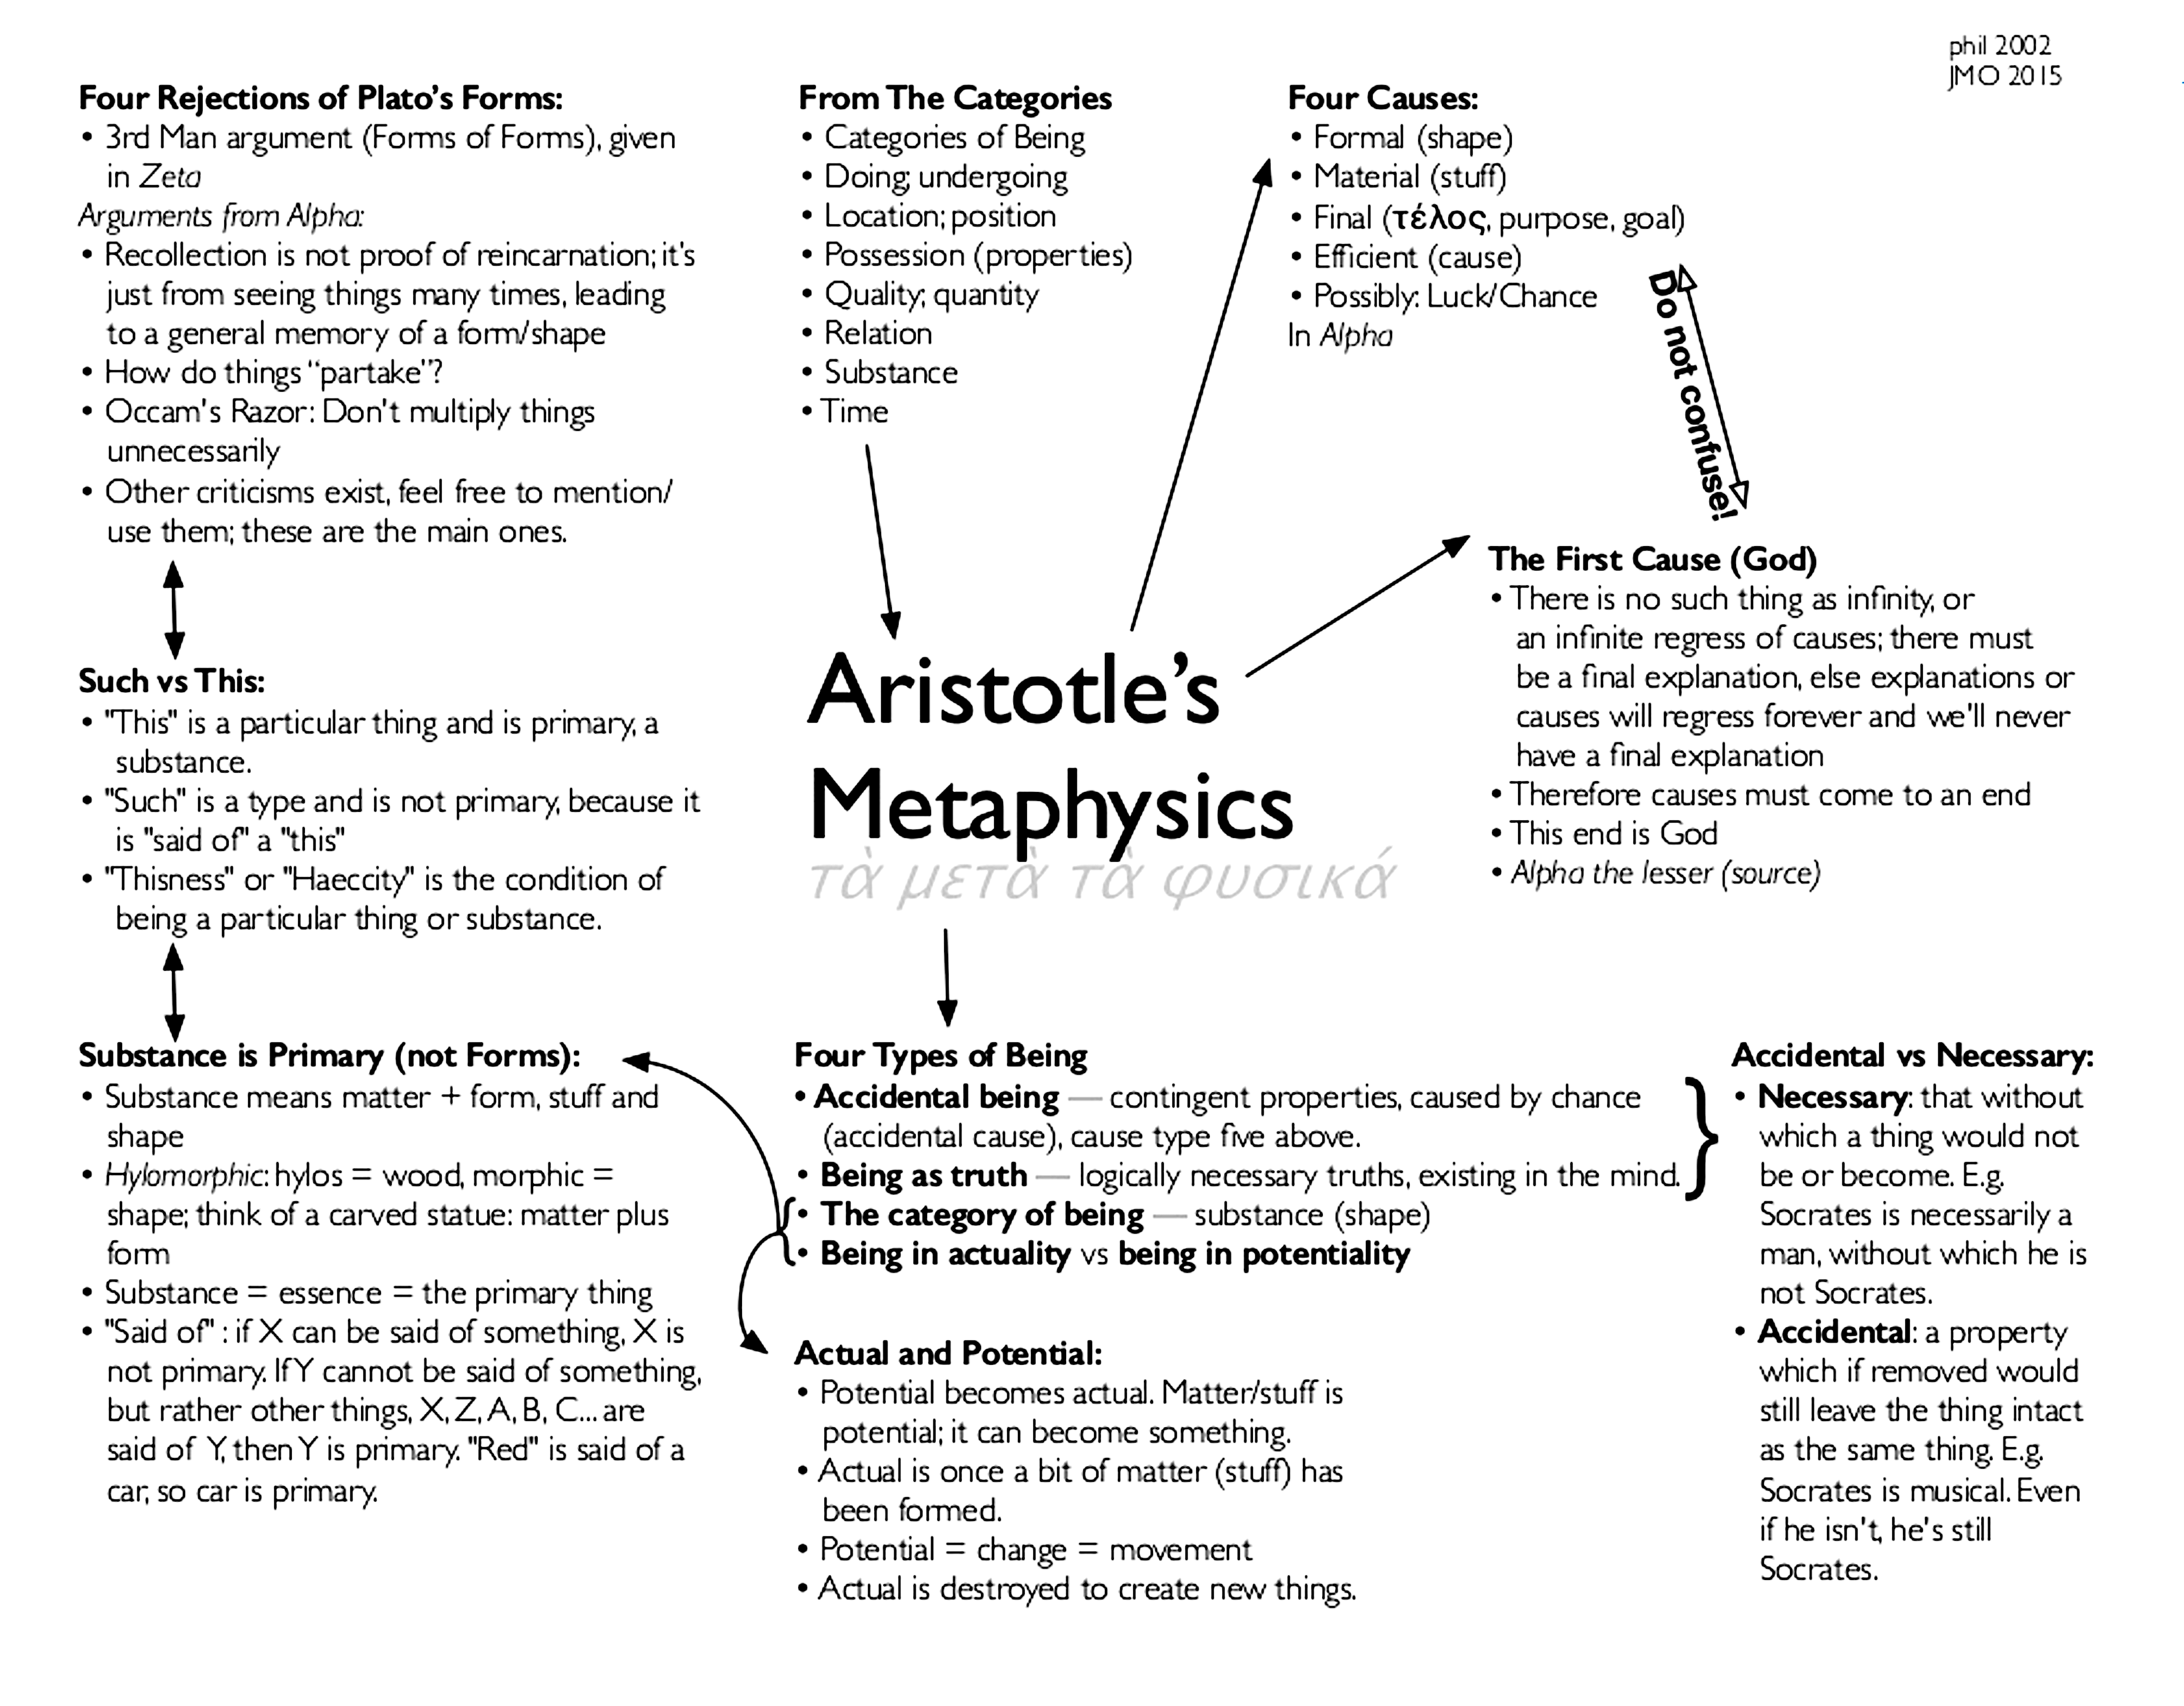 Aristotle's Metaphysics (With images) Metaphysics